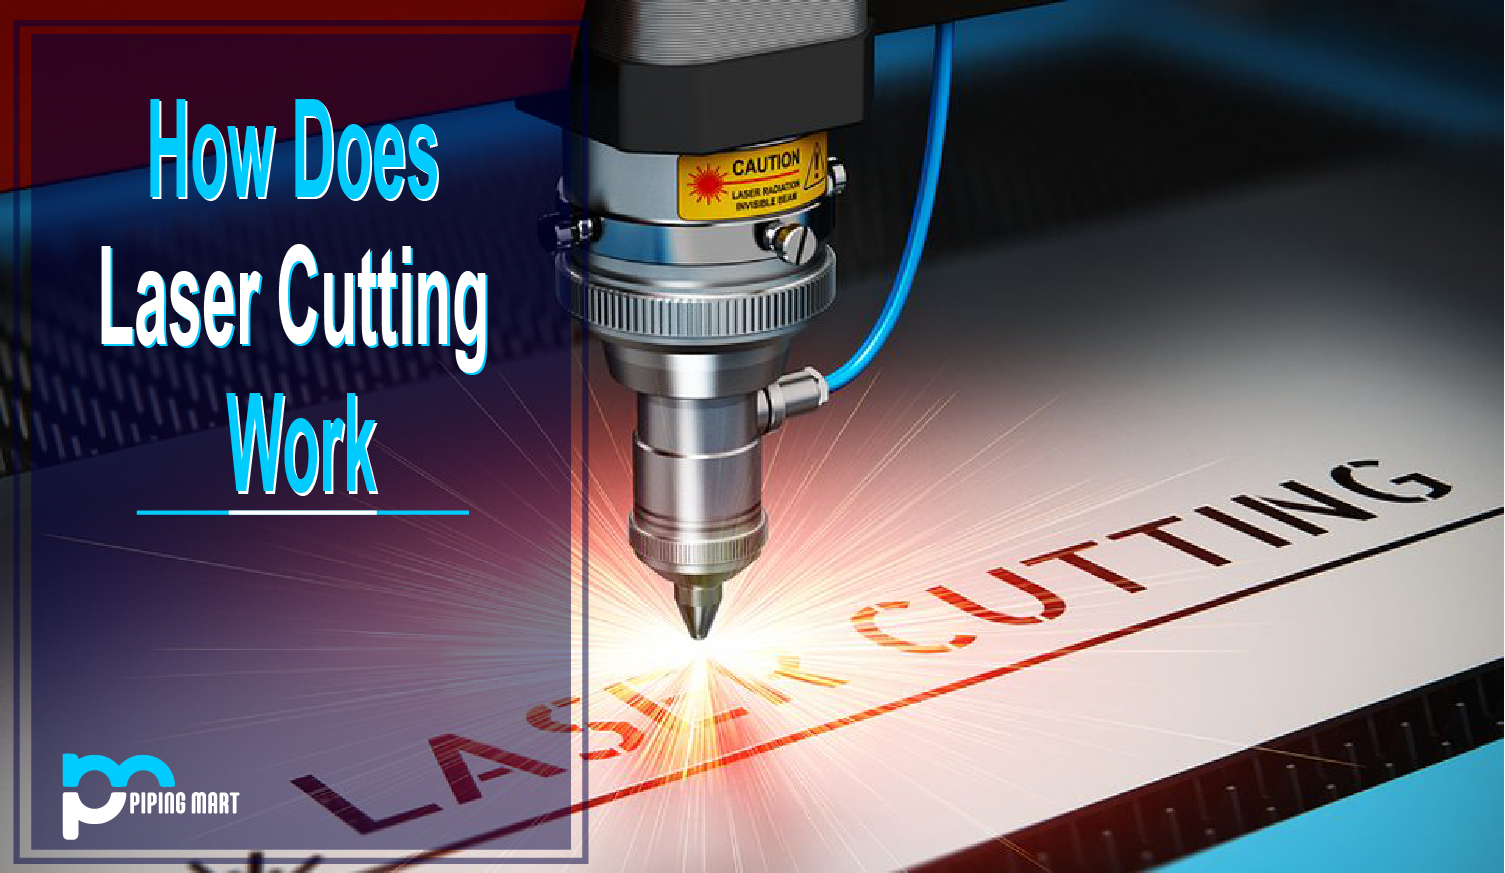 How Does Laser Cutting Work